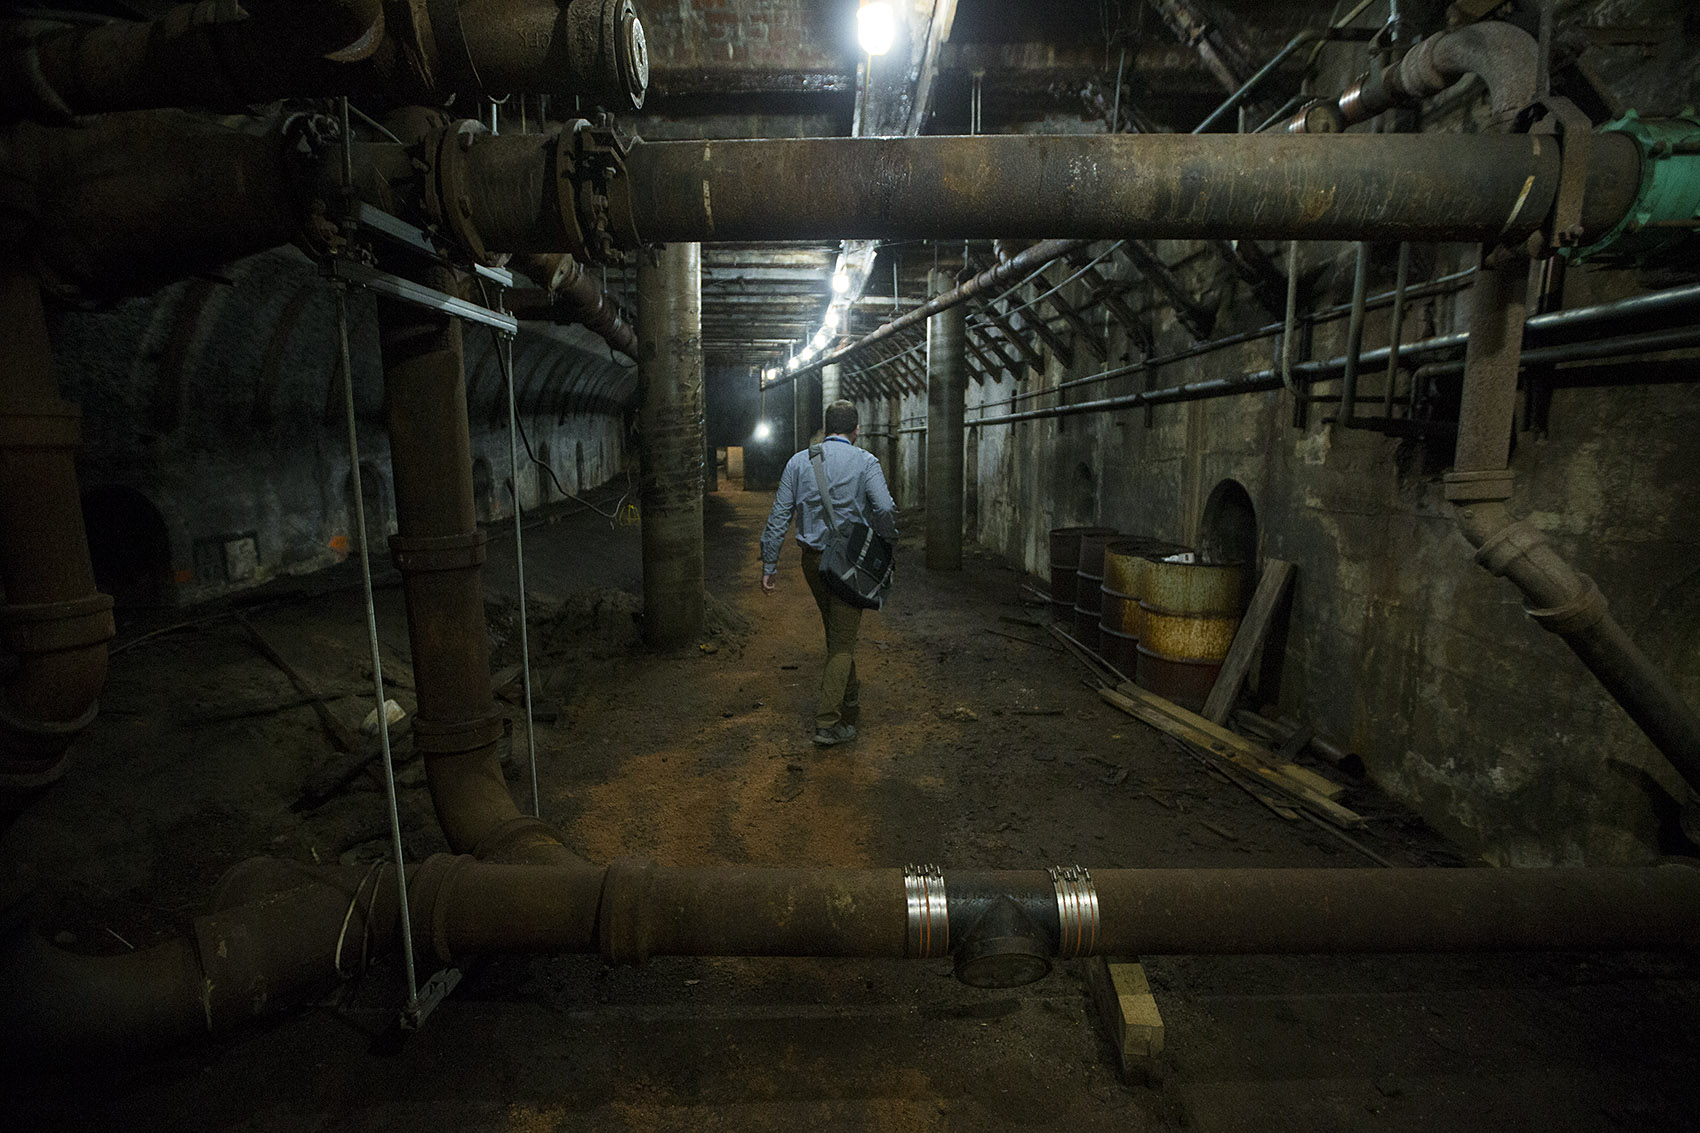 City of Boston archaeologist Joe Bagley walks through the first of two sections of an old MBTA tunnel, which traveled between Scollay Square and Adams Square, and is believed to have been shut down in 1963. (Jesse Costa/WBUR)